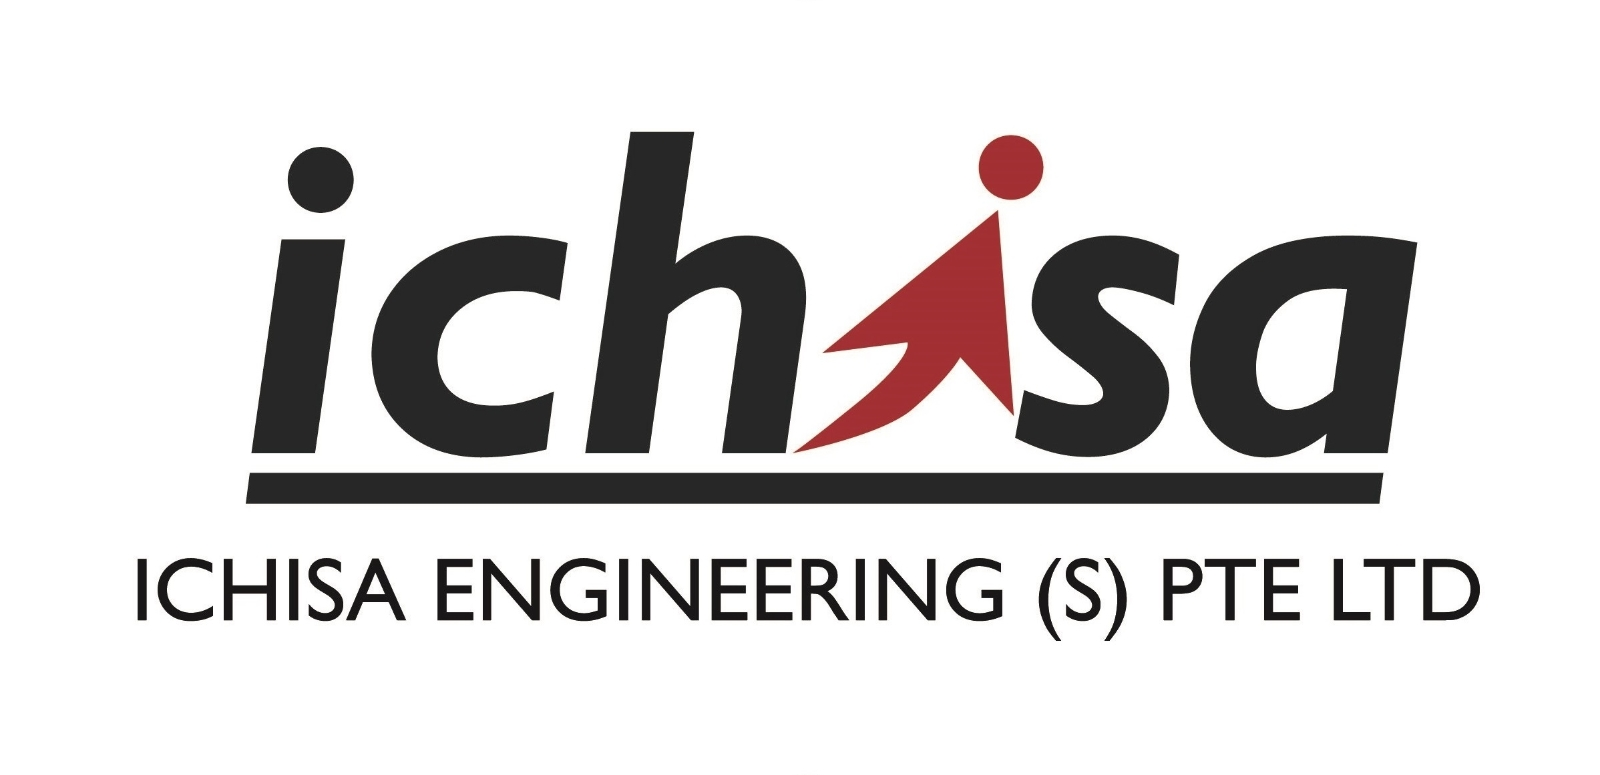 ICHISA ENGINEERING